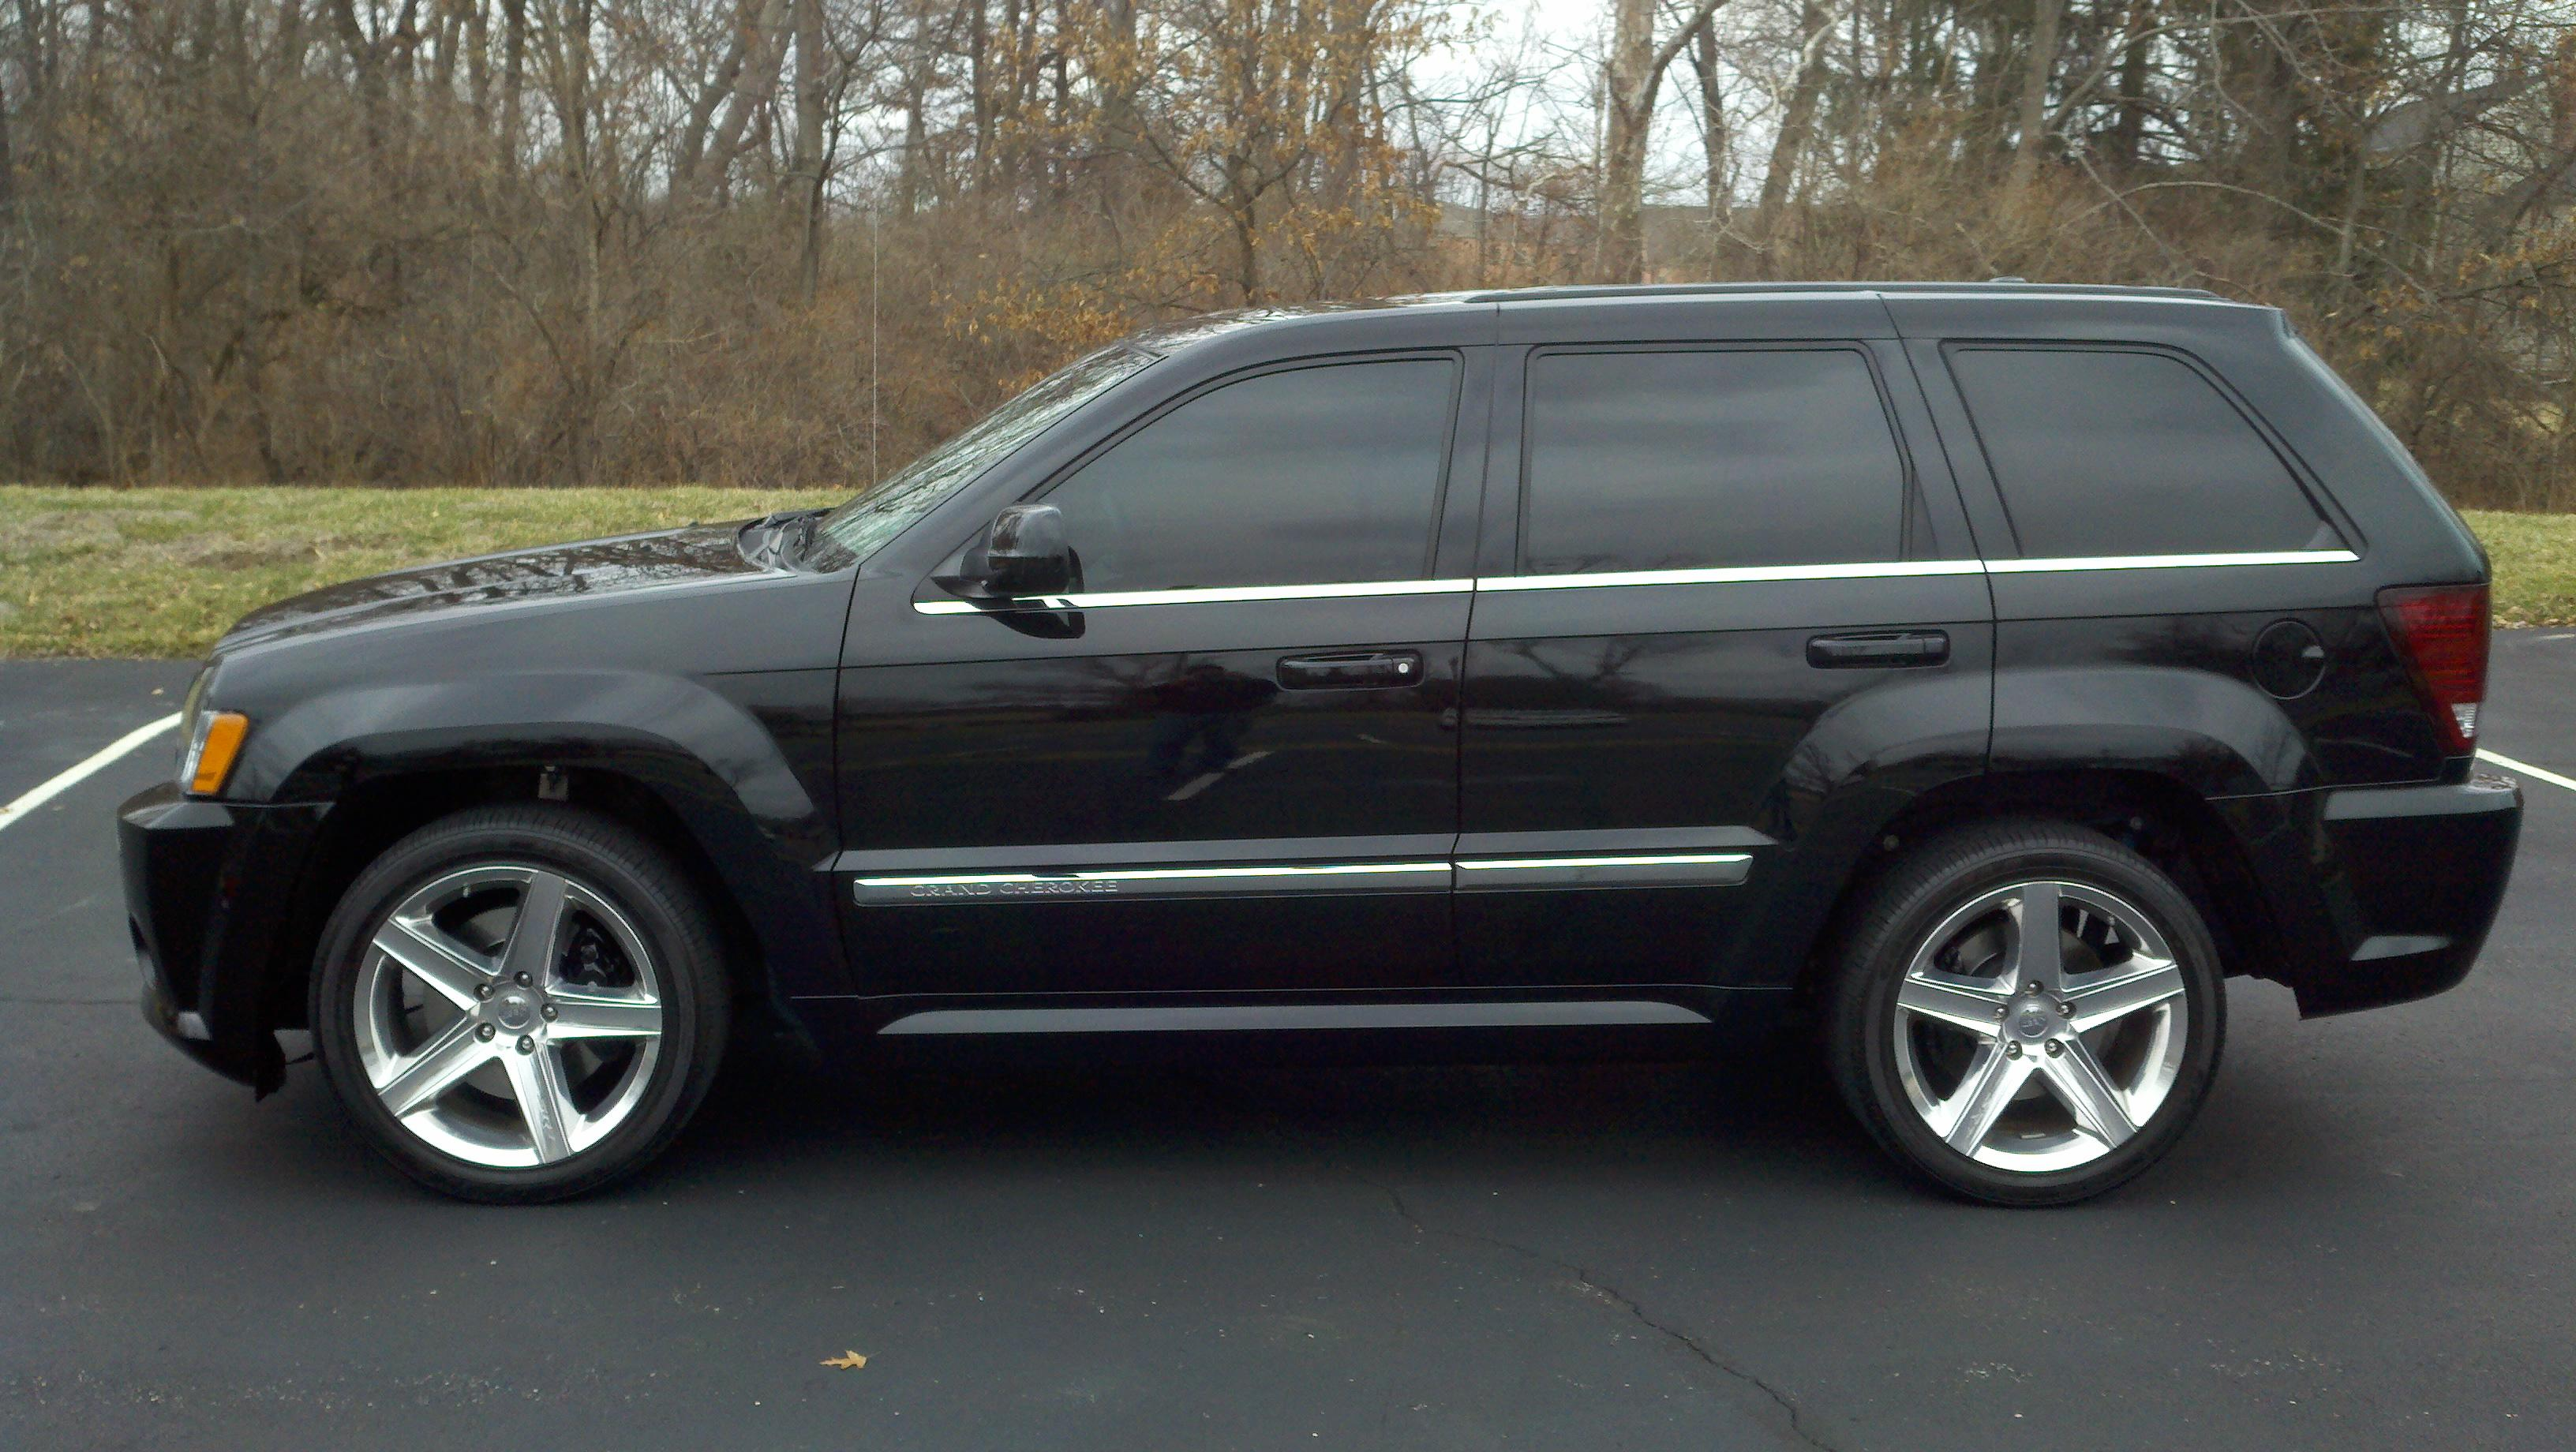 2007 jeep grand cherokee 2007 jeep grand cherokee srt8 hemi. Cars Review. Best American Auto & Cars Review